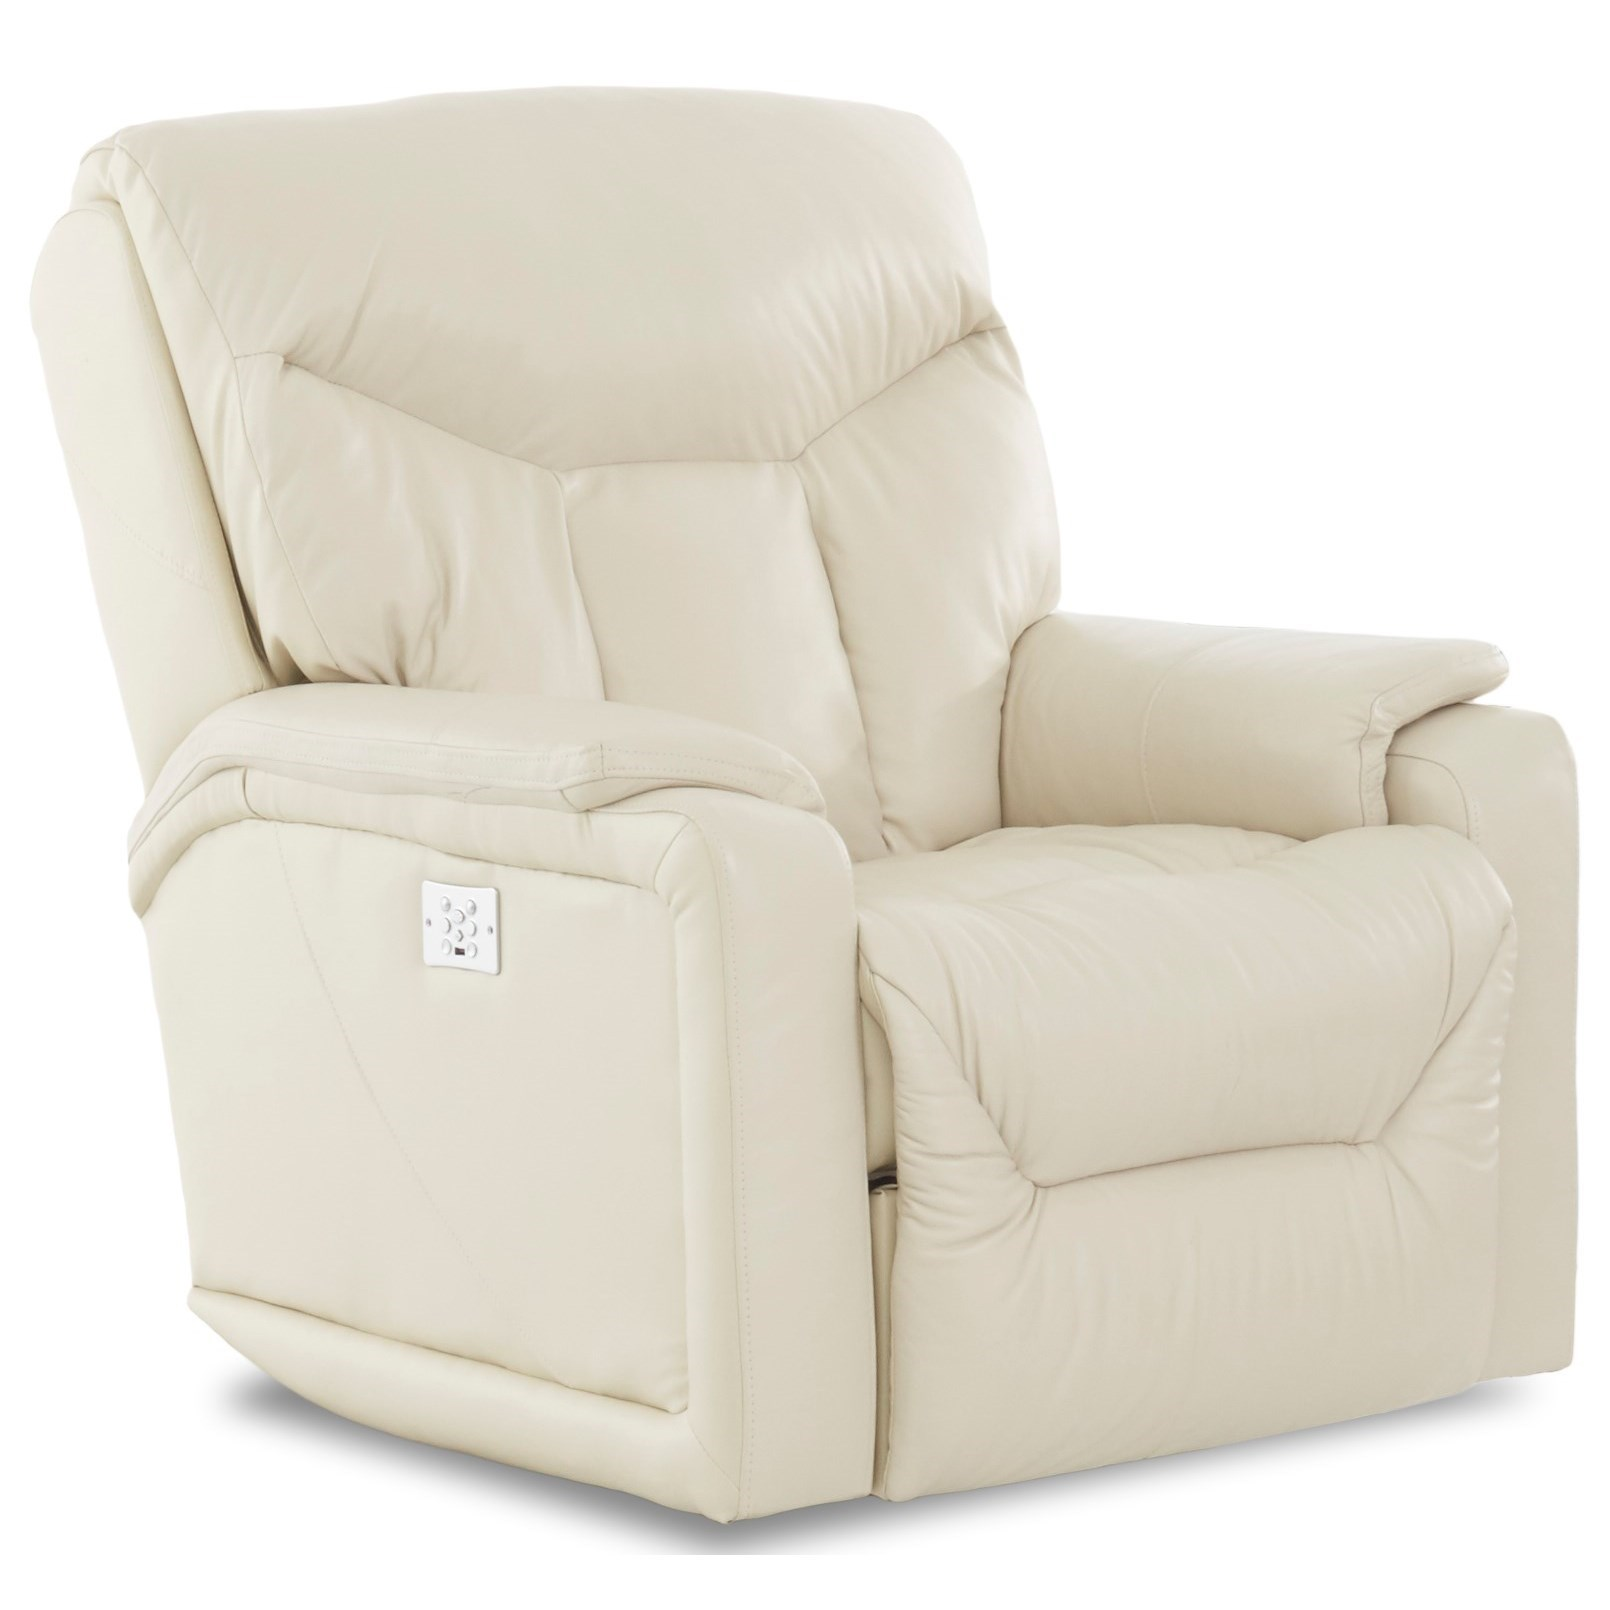 Casual Power Rocker Recliner with USB Charging Port, Bluetooth App, & Power Head/Lumbar